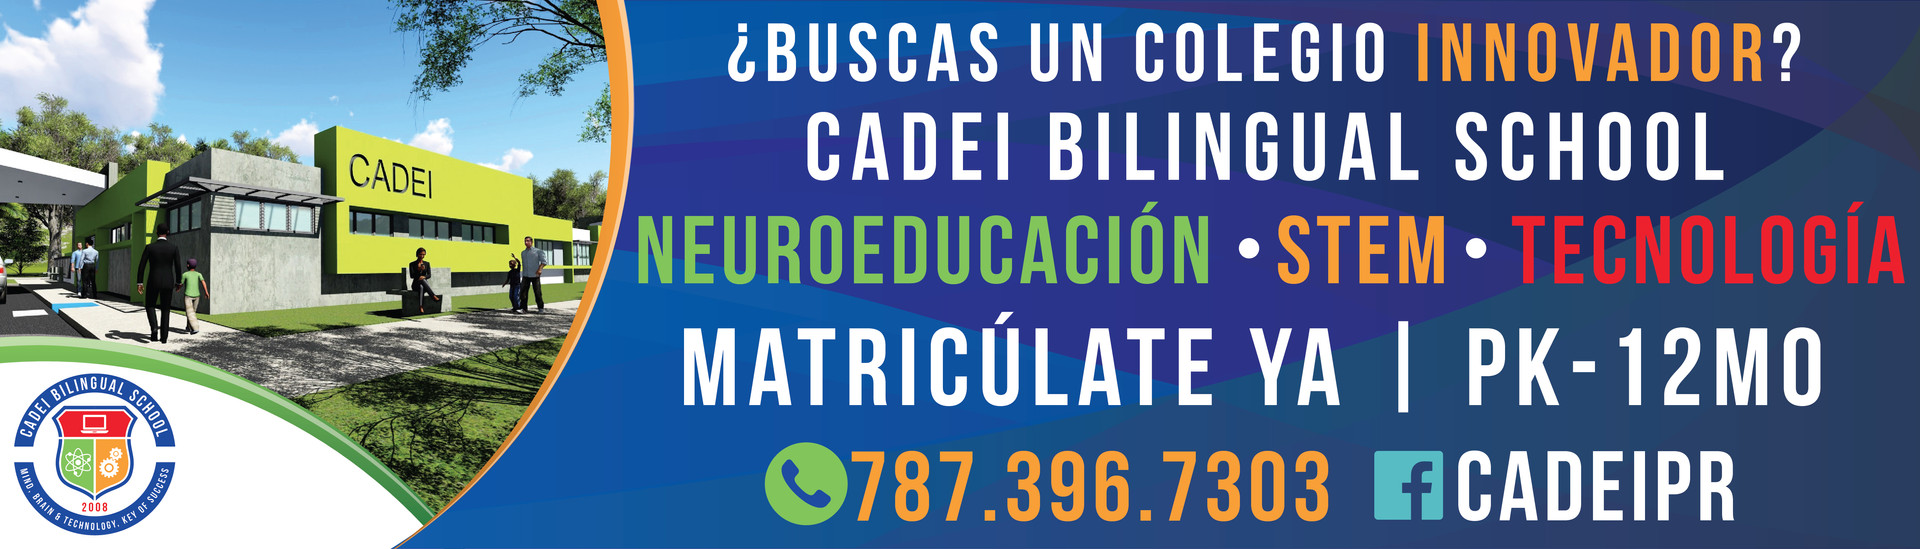 CADEI Bilingual School | Billboard